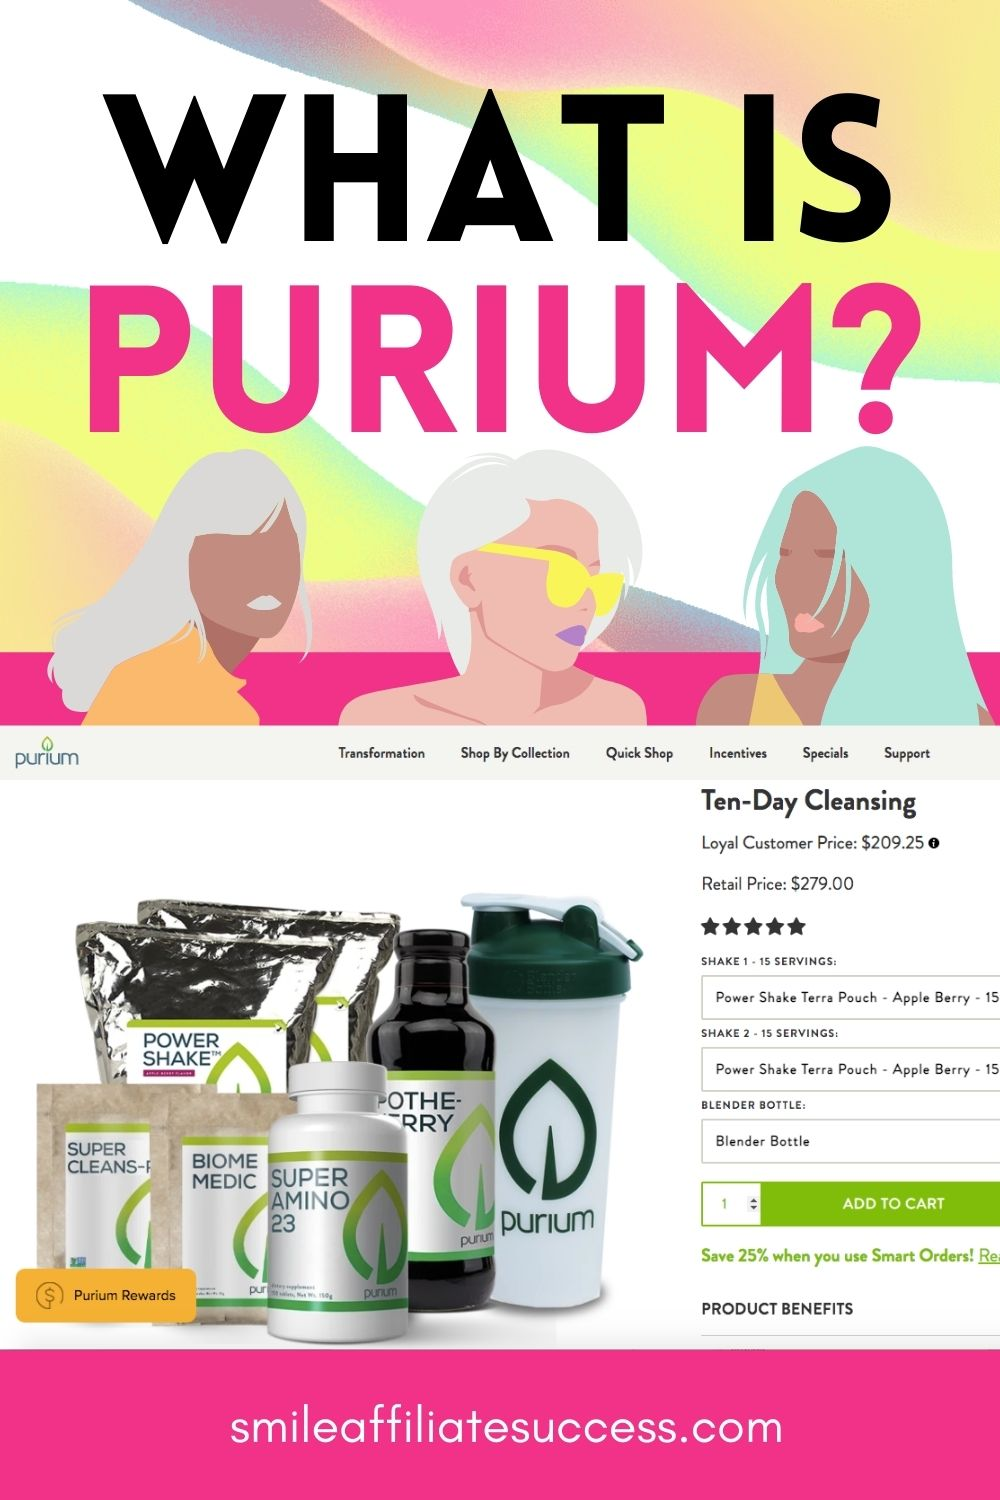 What Is Purium?